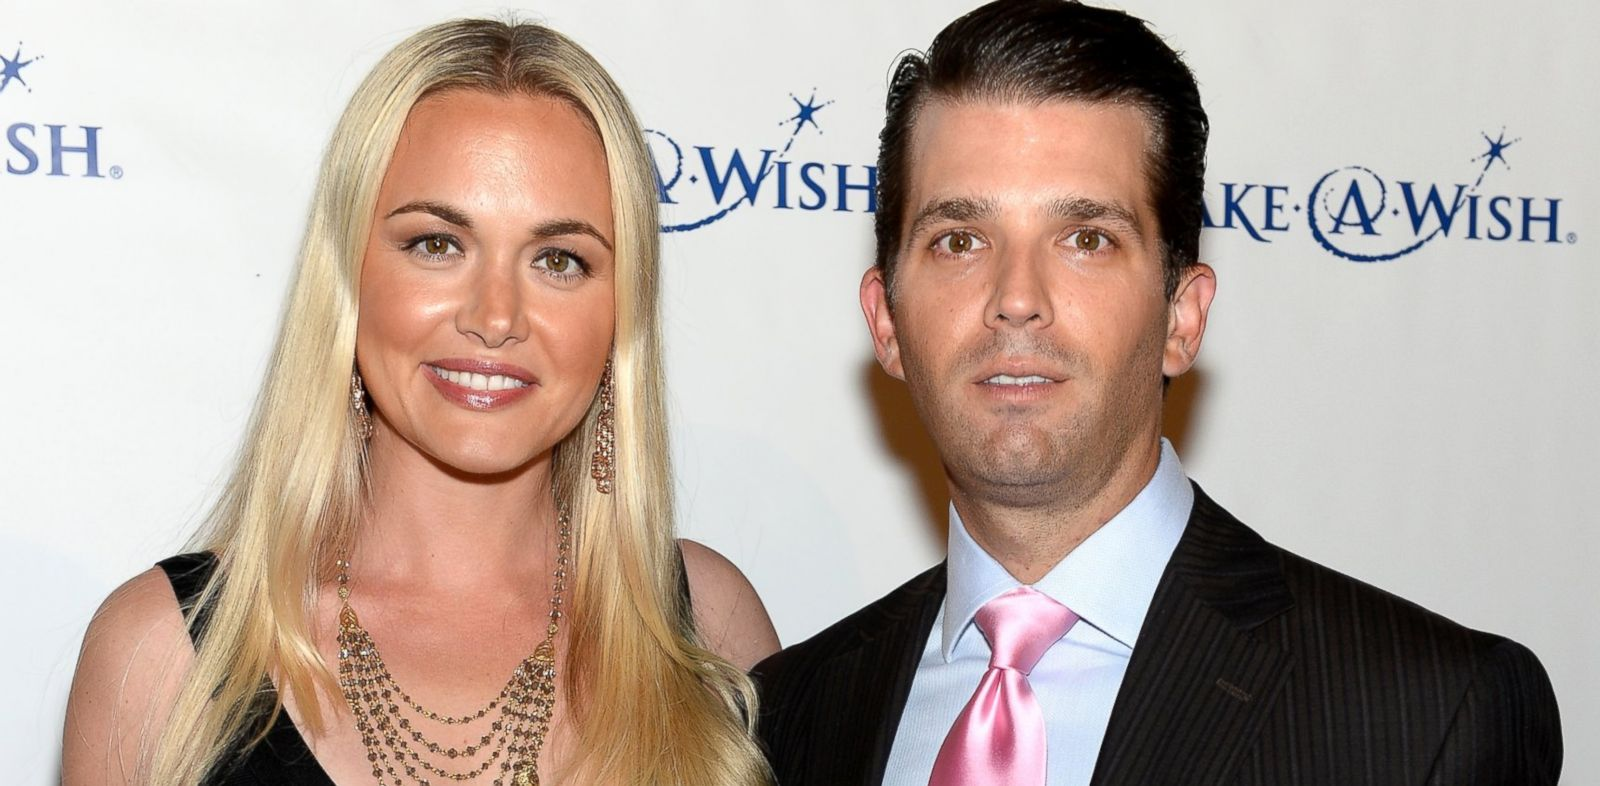 """PHOTO: Vanessa Trump and Donald Trump Jr. attend """"An Evening of Wishes"""", Make-A-Wish Metro New Yorks 30th Anniversary Gala at Cipriani, Wall Street, June 13, 2013, in New York City."""